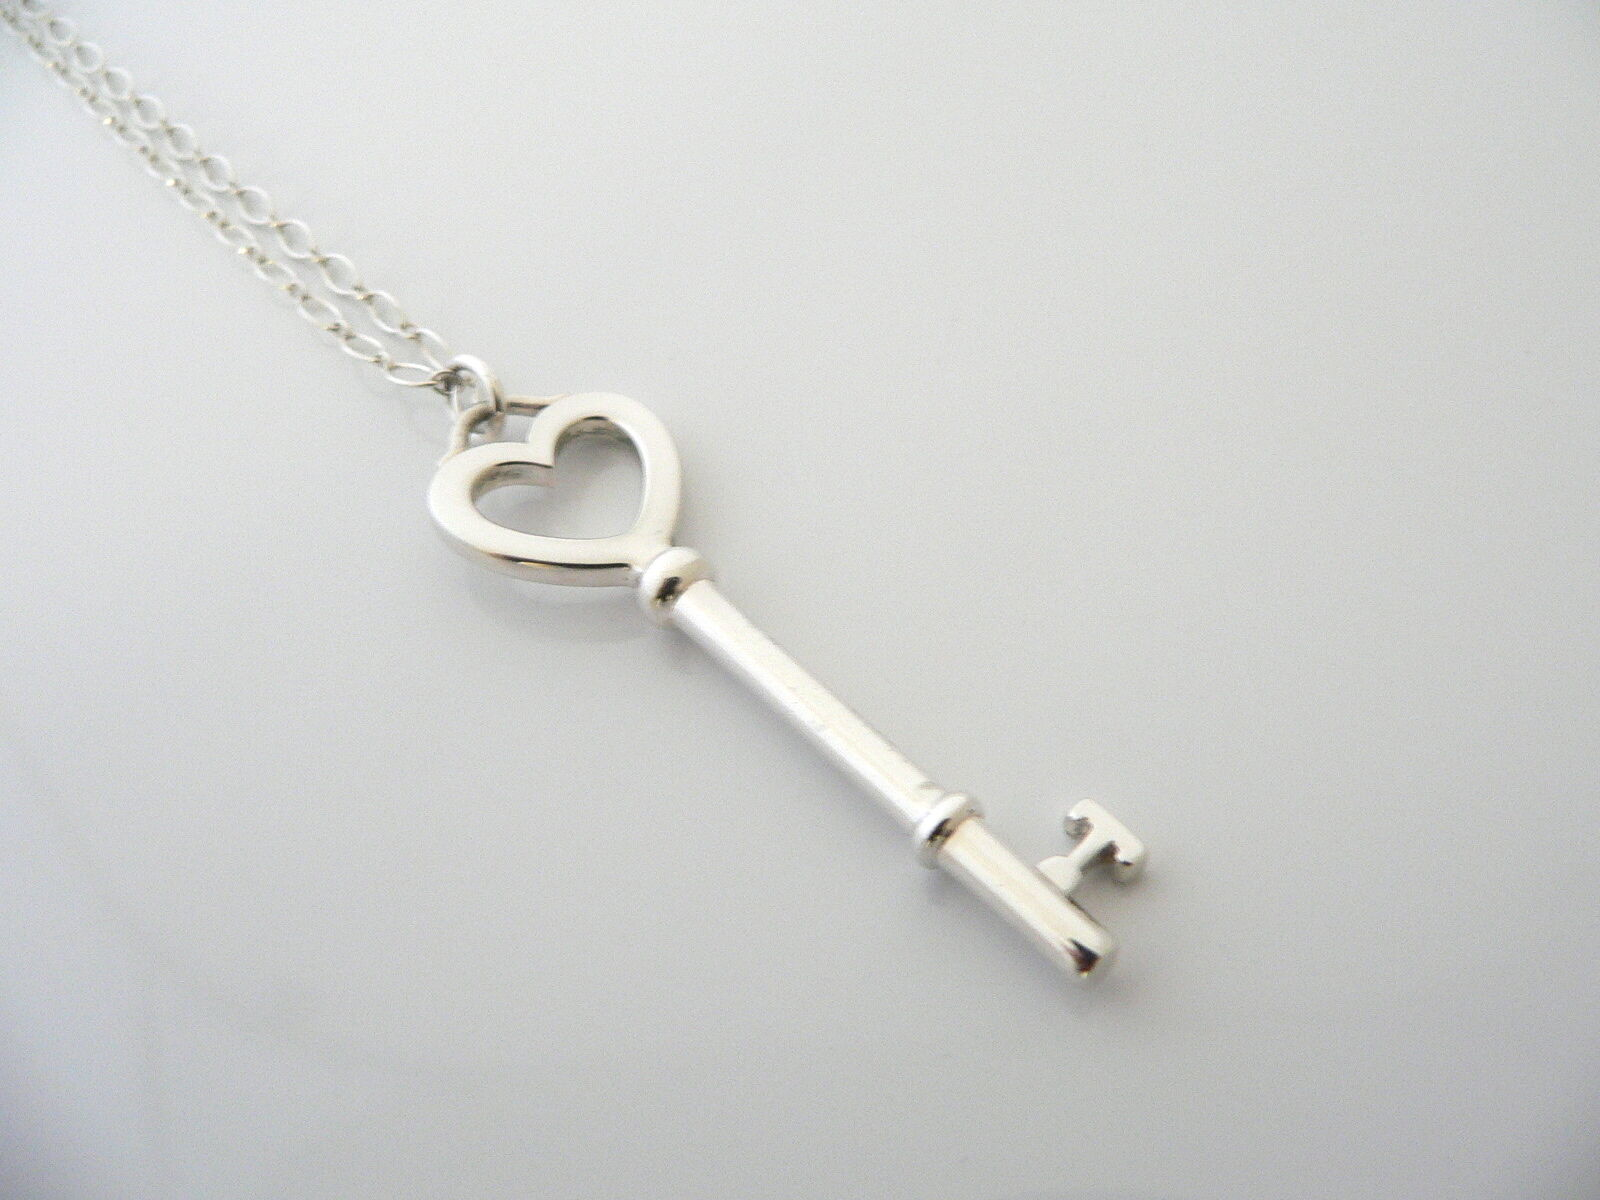 Tiffany Co Silver Large Heart Key Necklace Pendant 18 Inch Chain Gift Love Regular Price 268 00